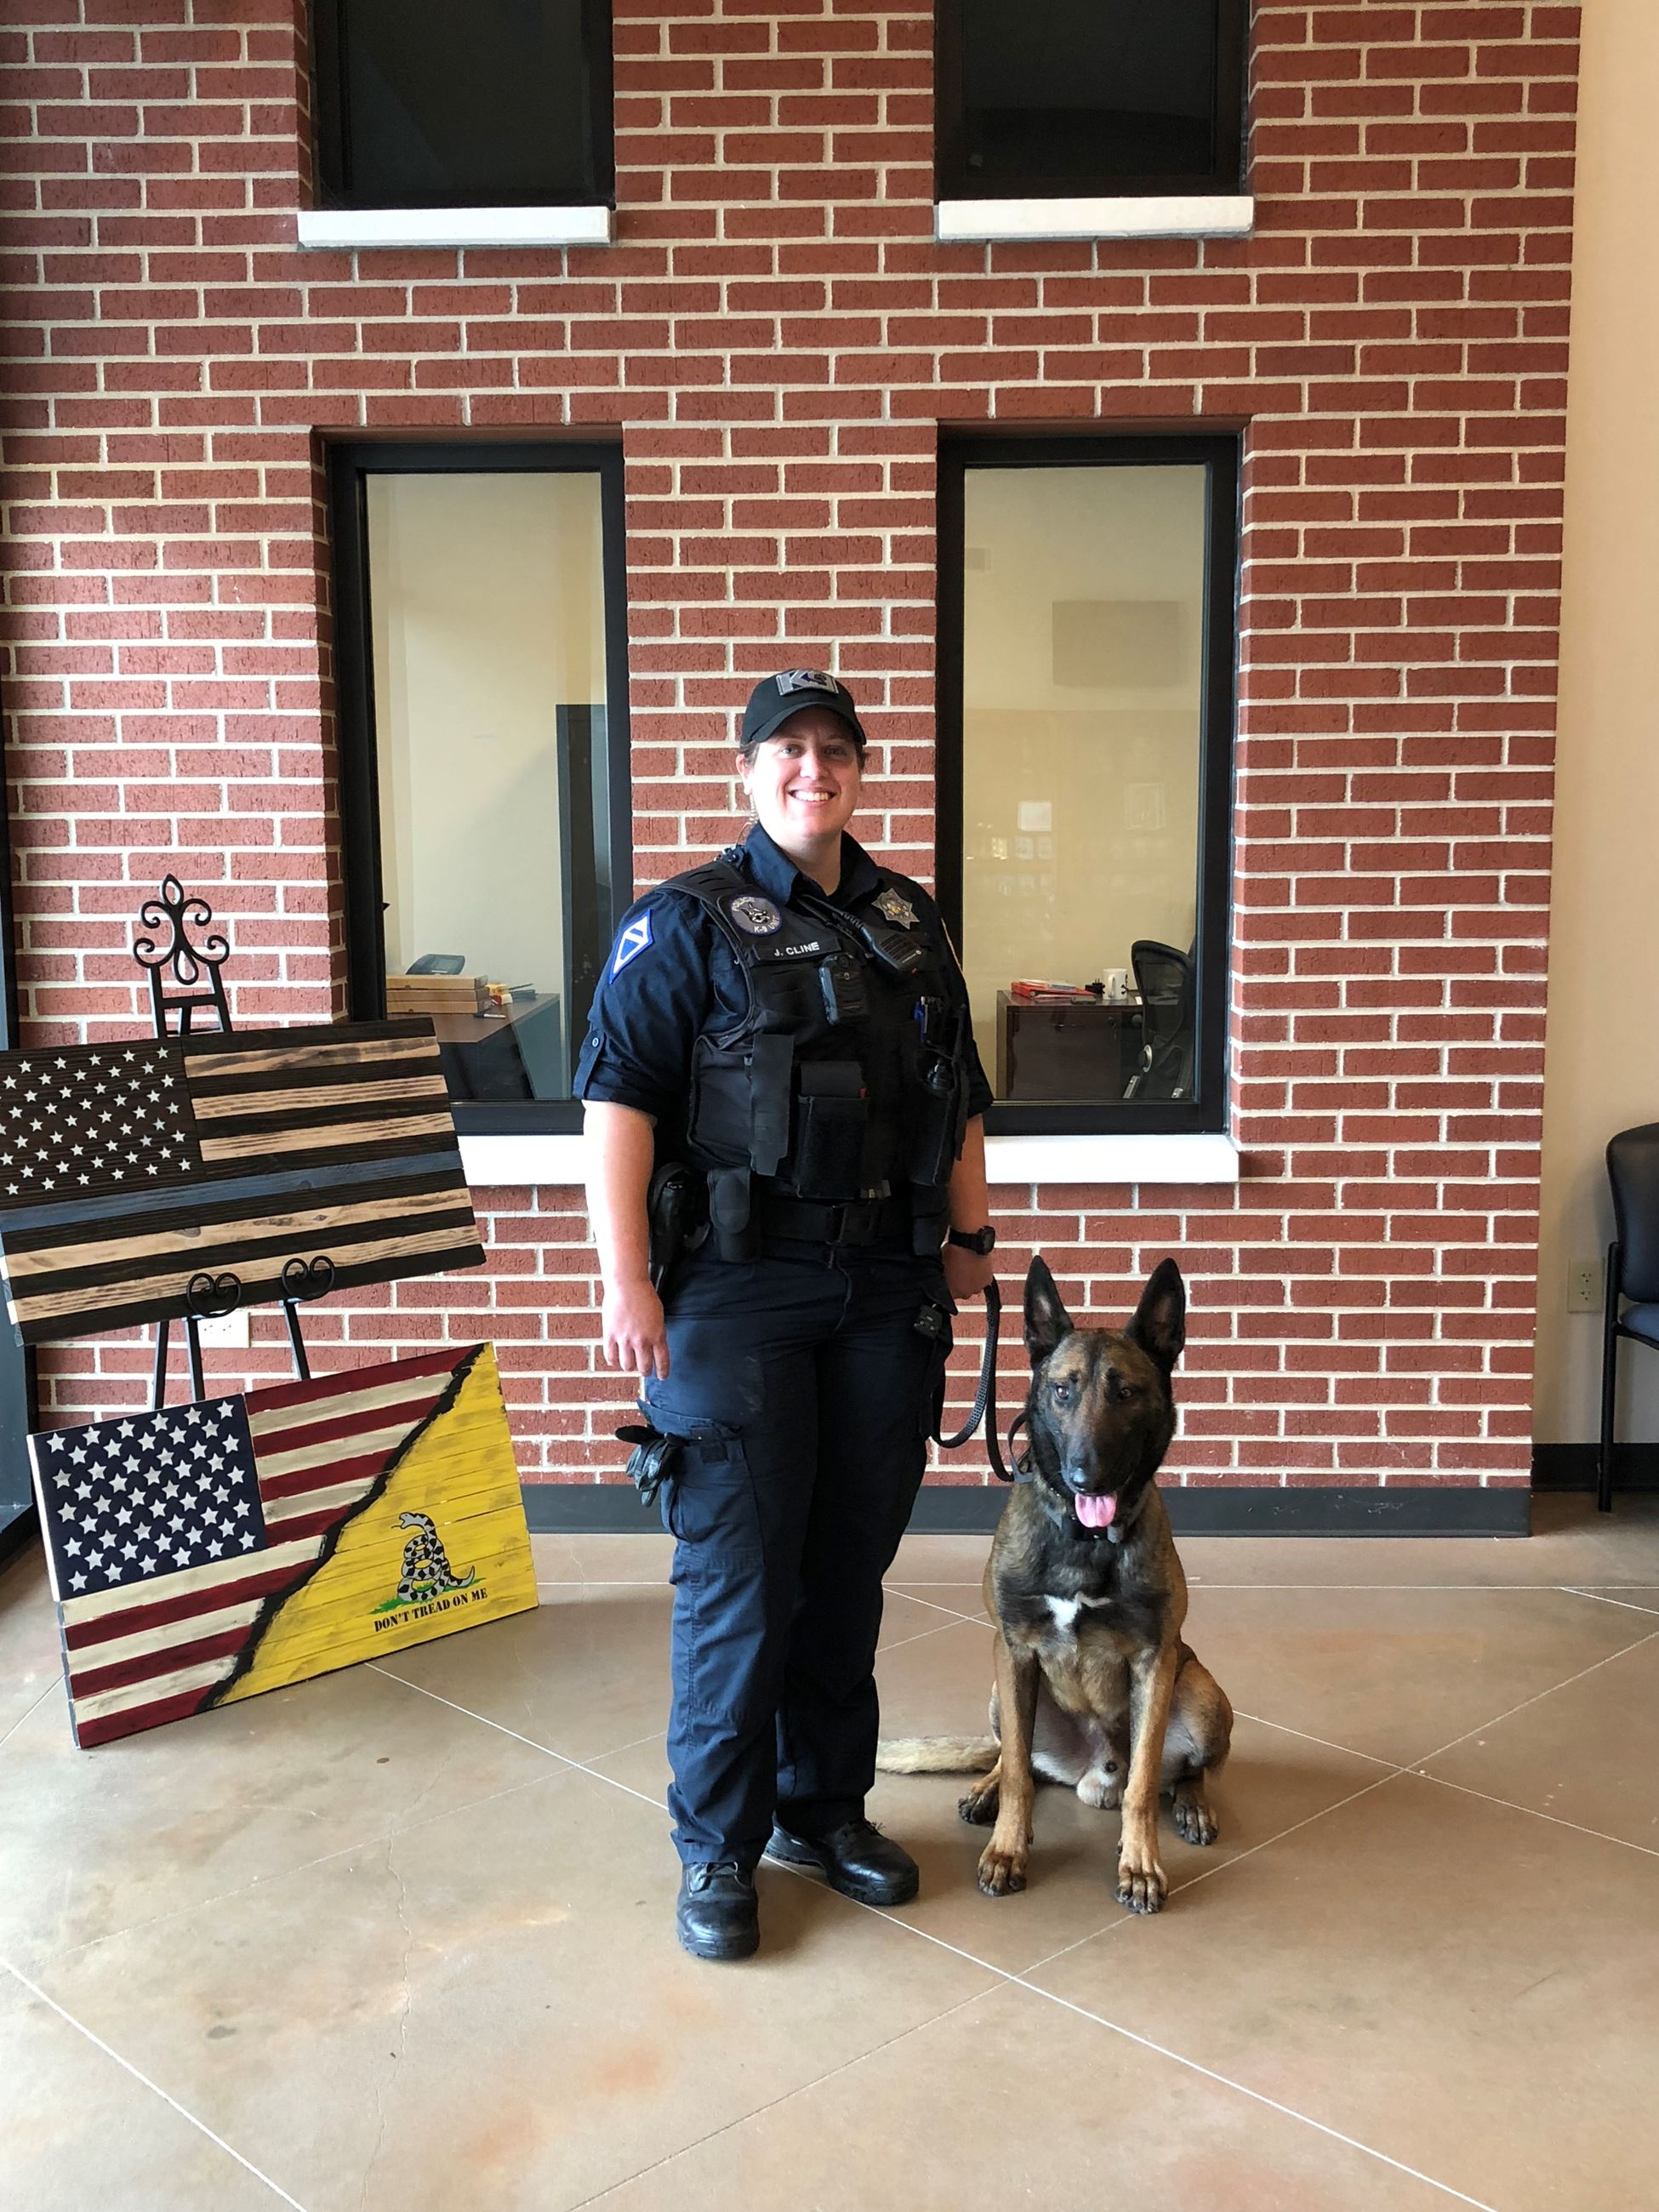 Officer Cline and K9 Spartan